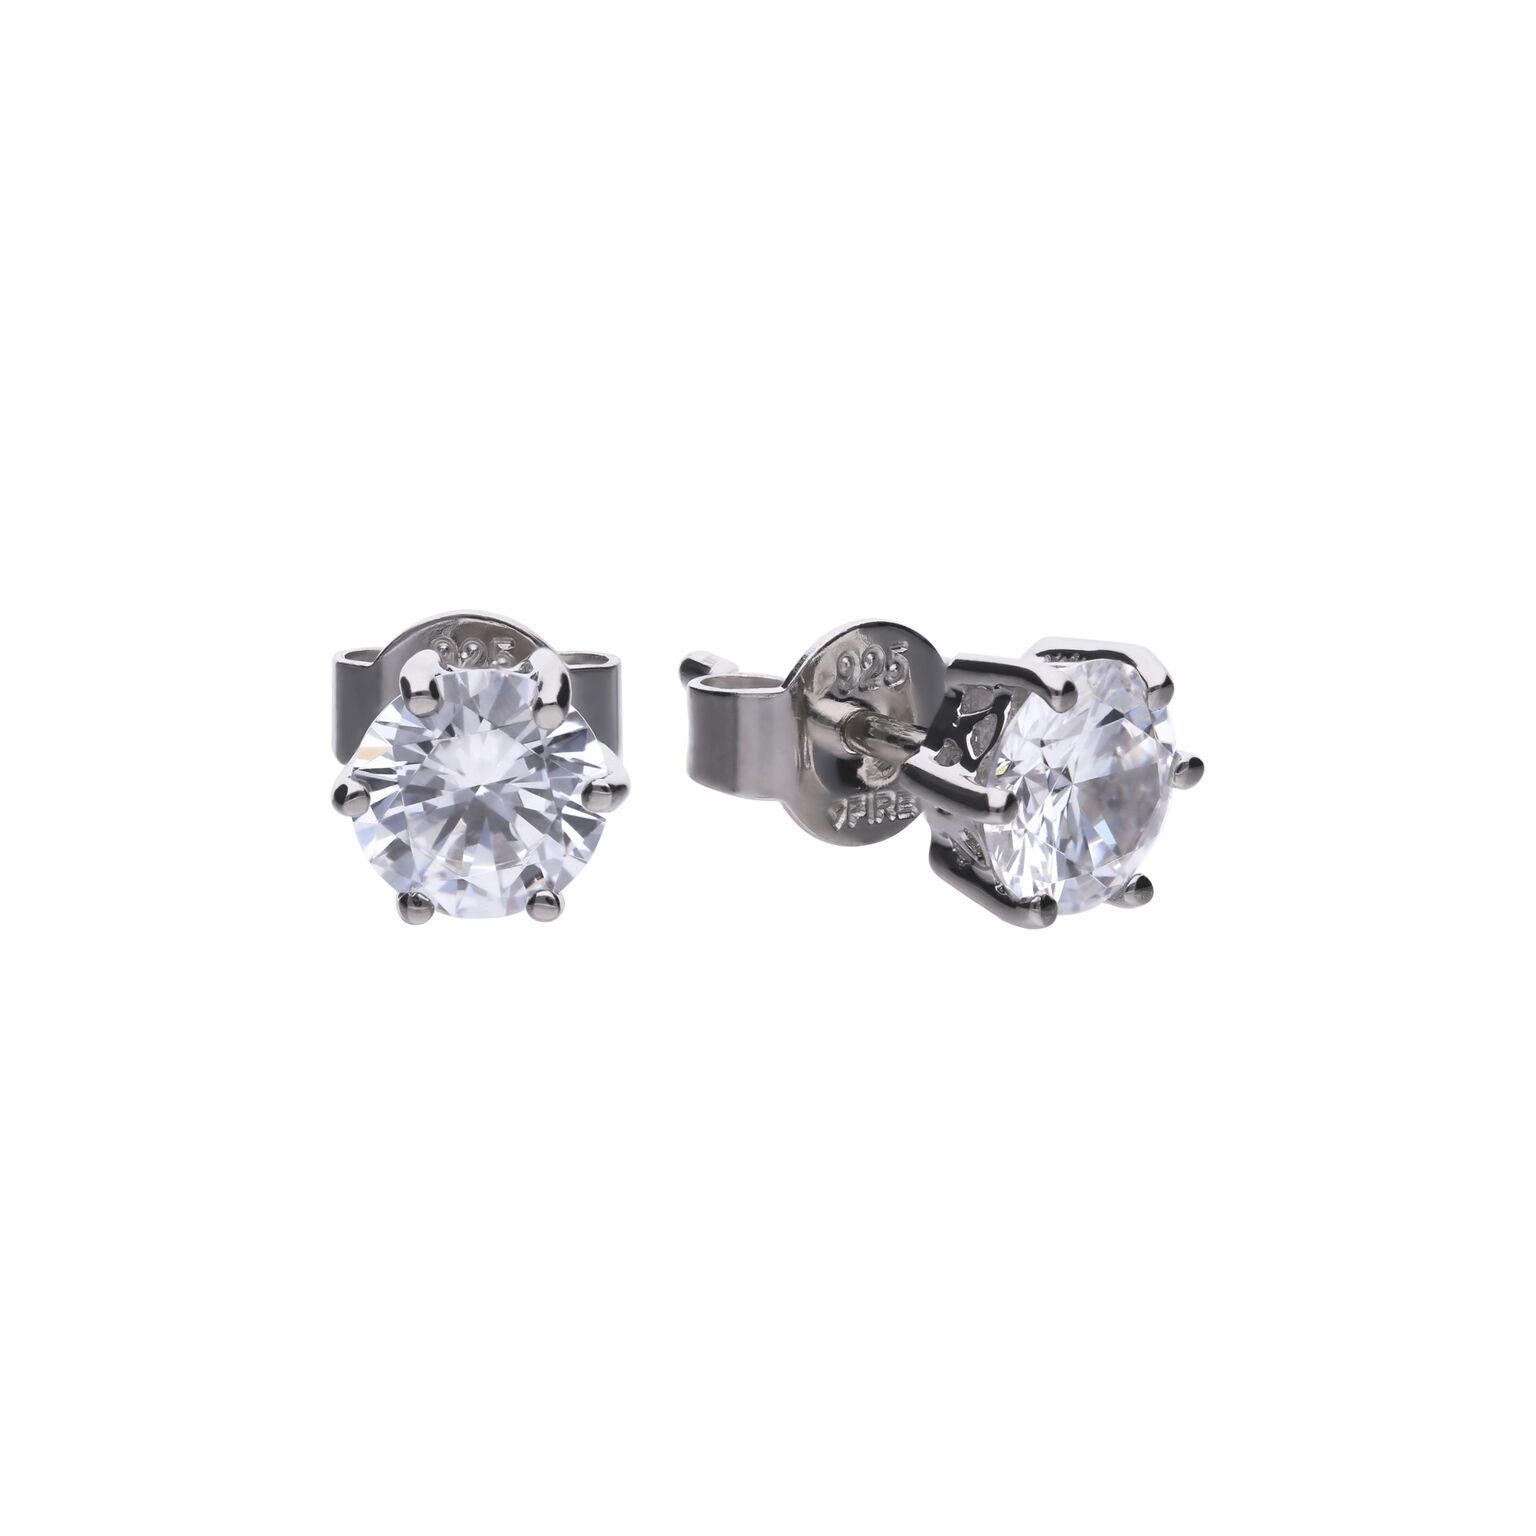 69479 - 1.5ct diamonfire Cubic Zirconia Solitaire stud earrings in silver